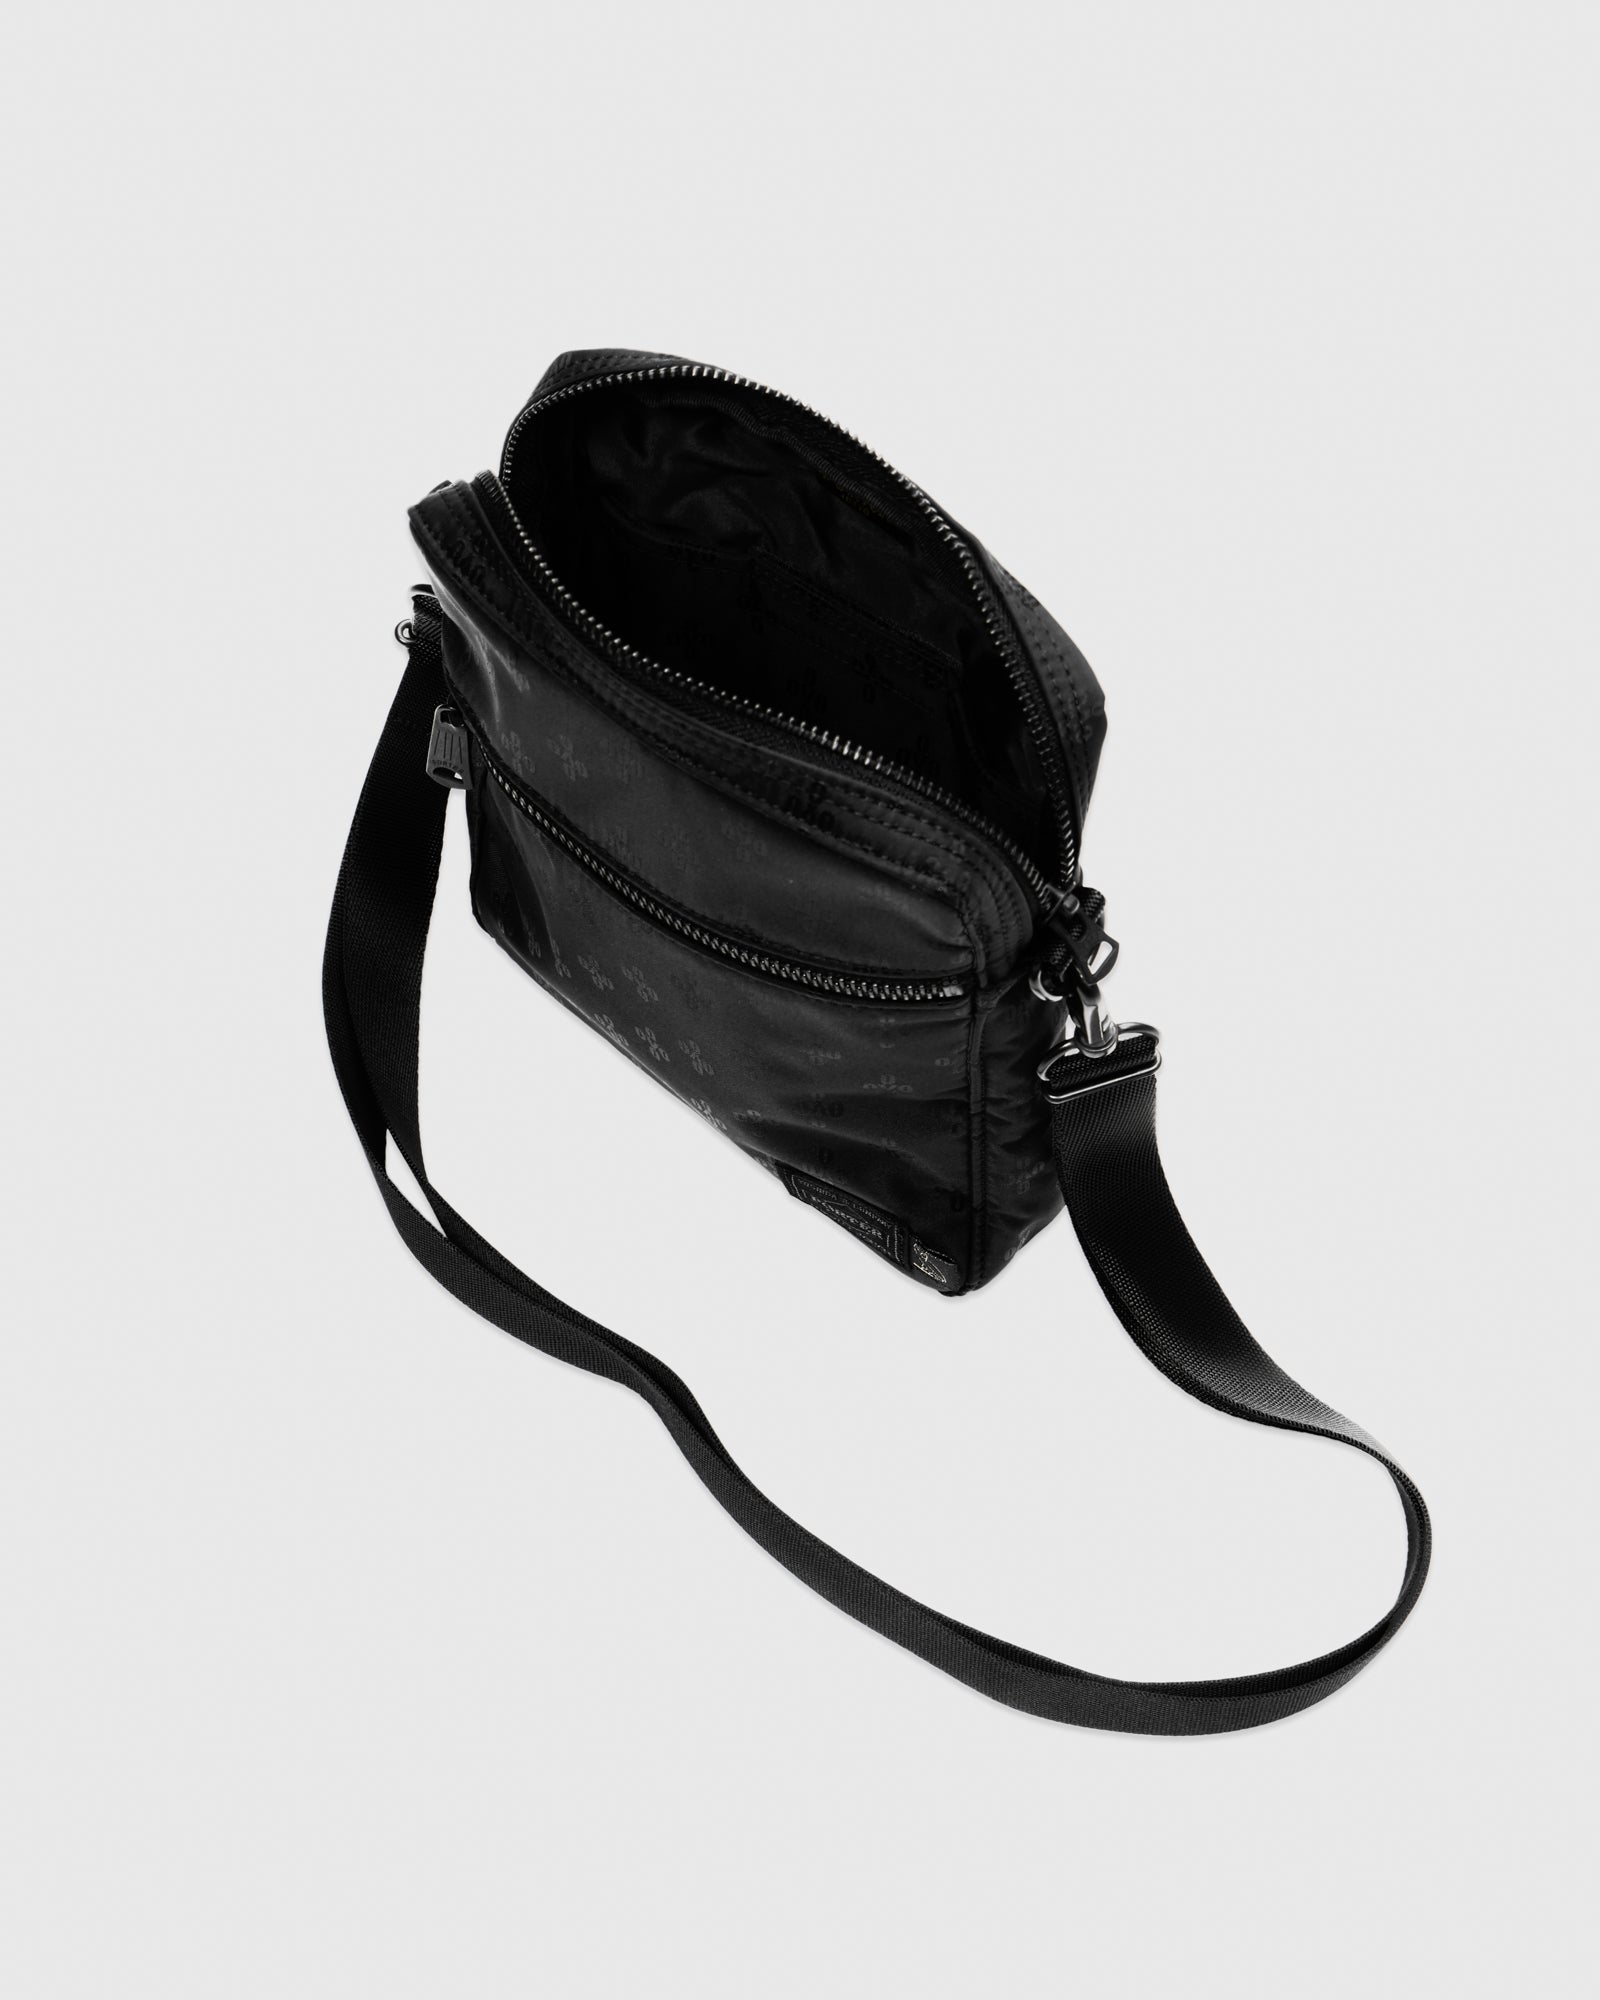 OVO X PORTER SHOULDER BAG - BLACK IMAGE #5